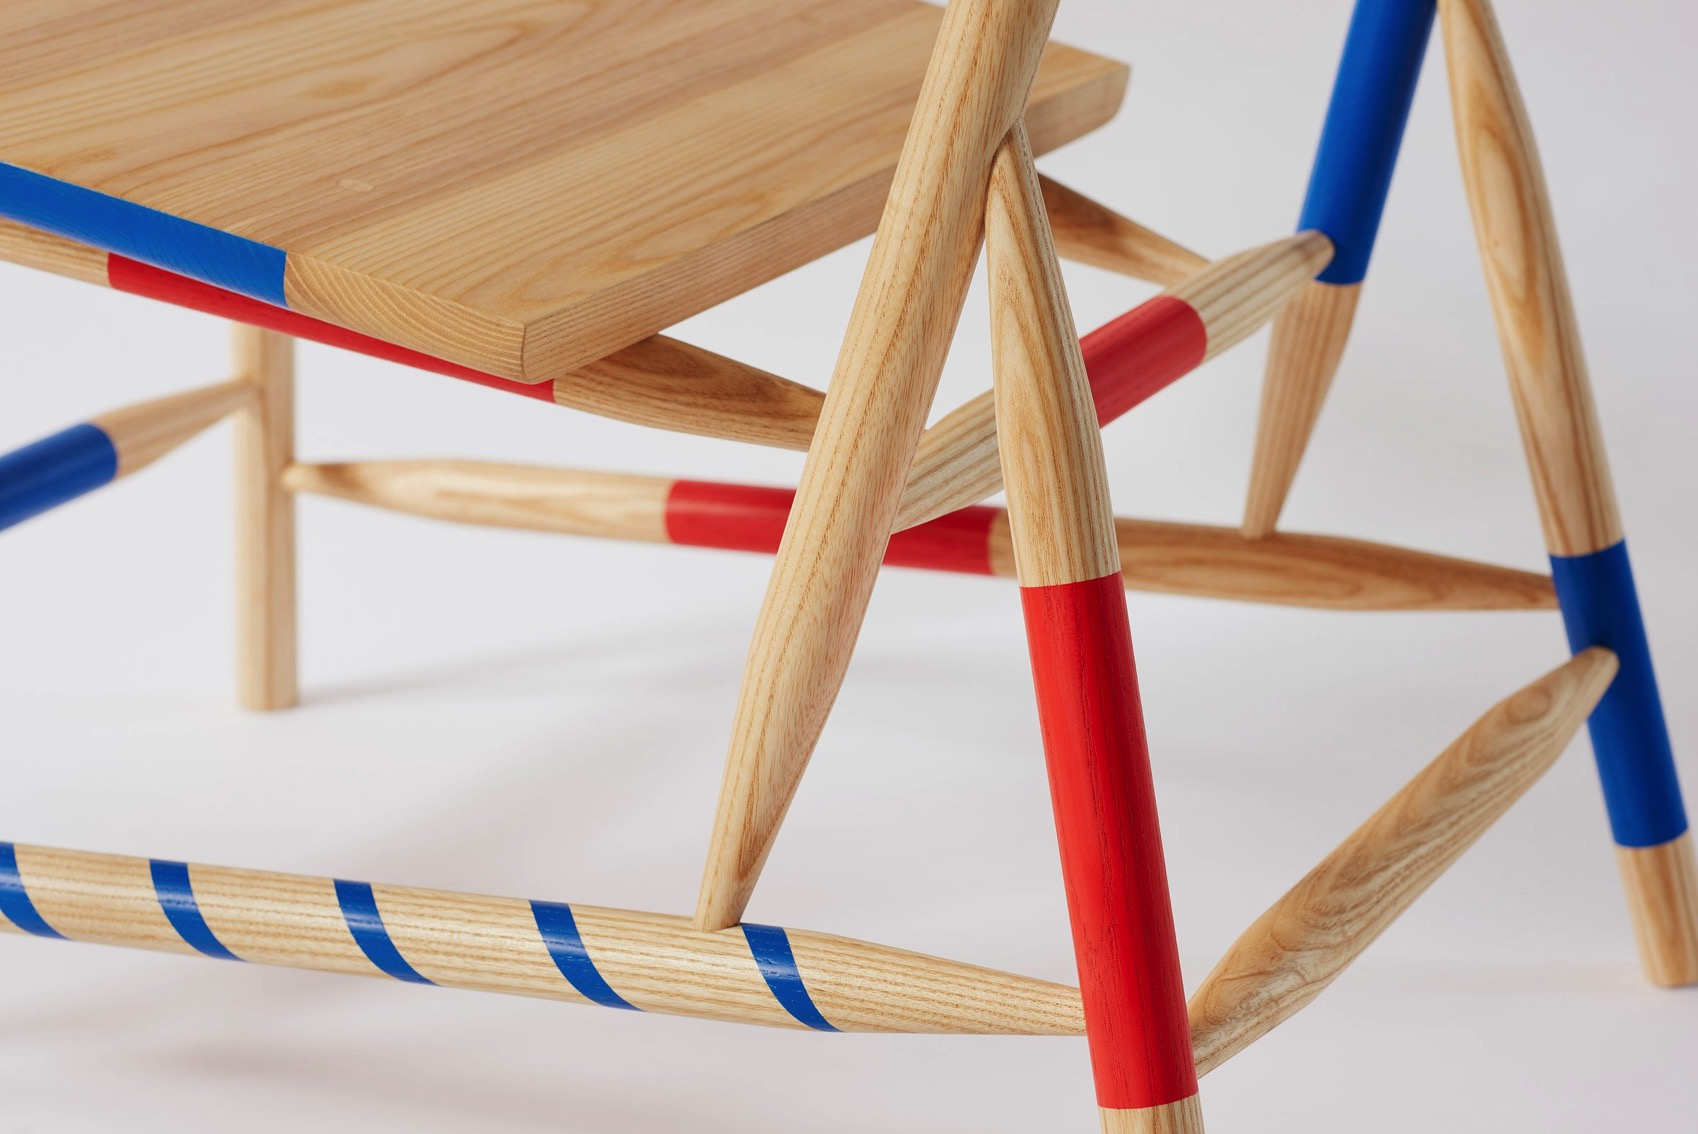 Mikado rio kobayashi furniture london design festival design dezeen 2364 col 3